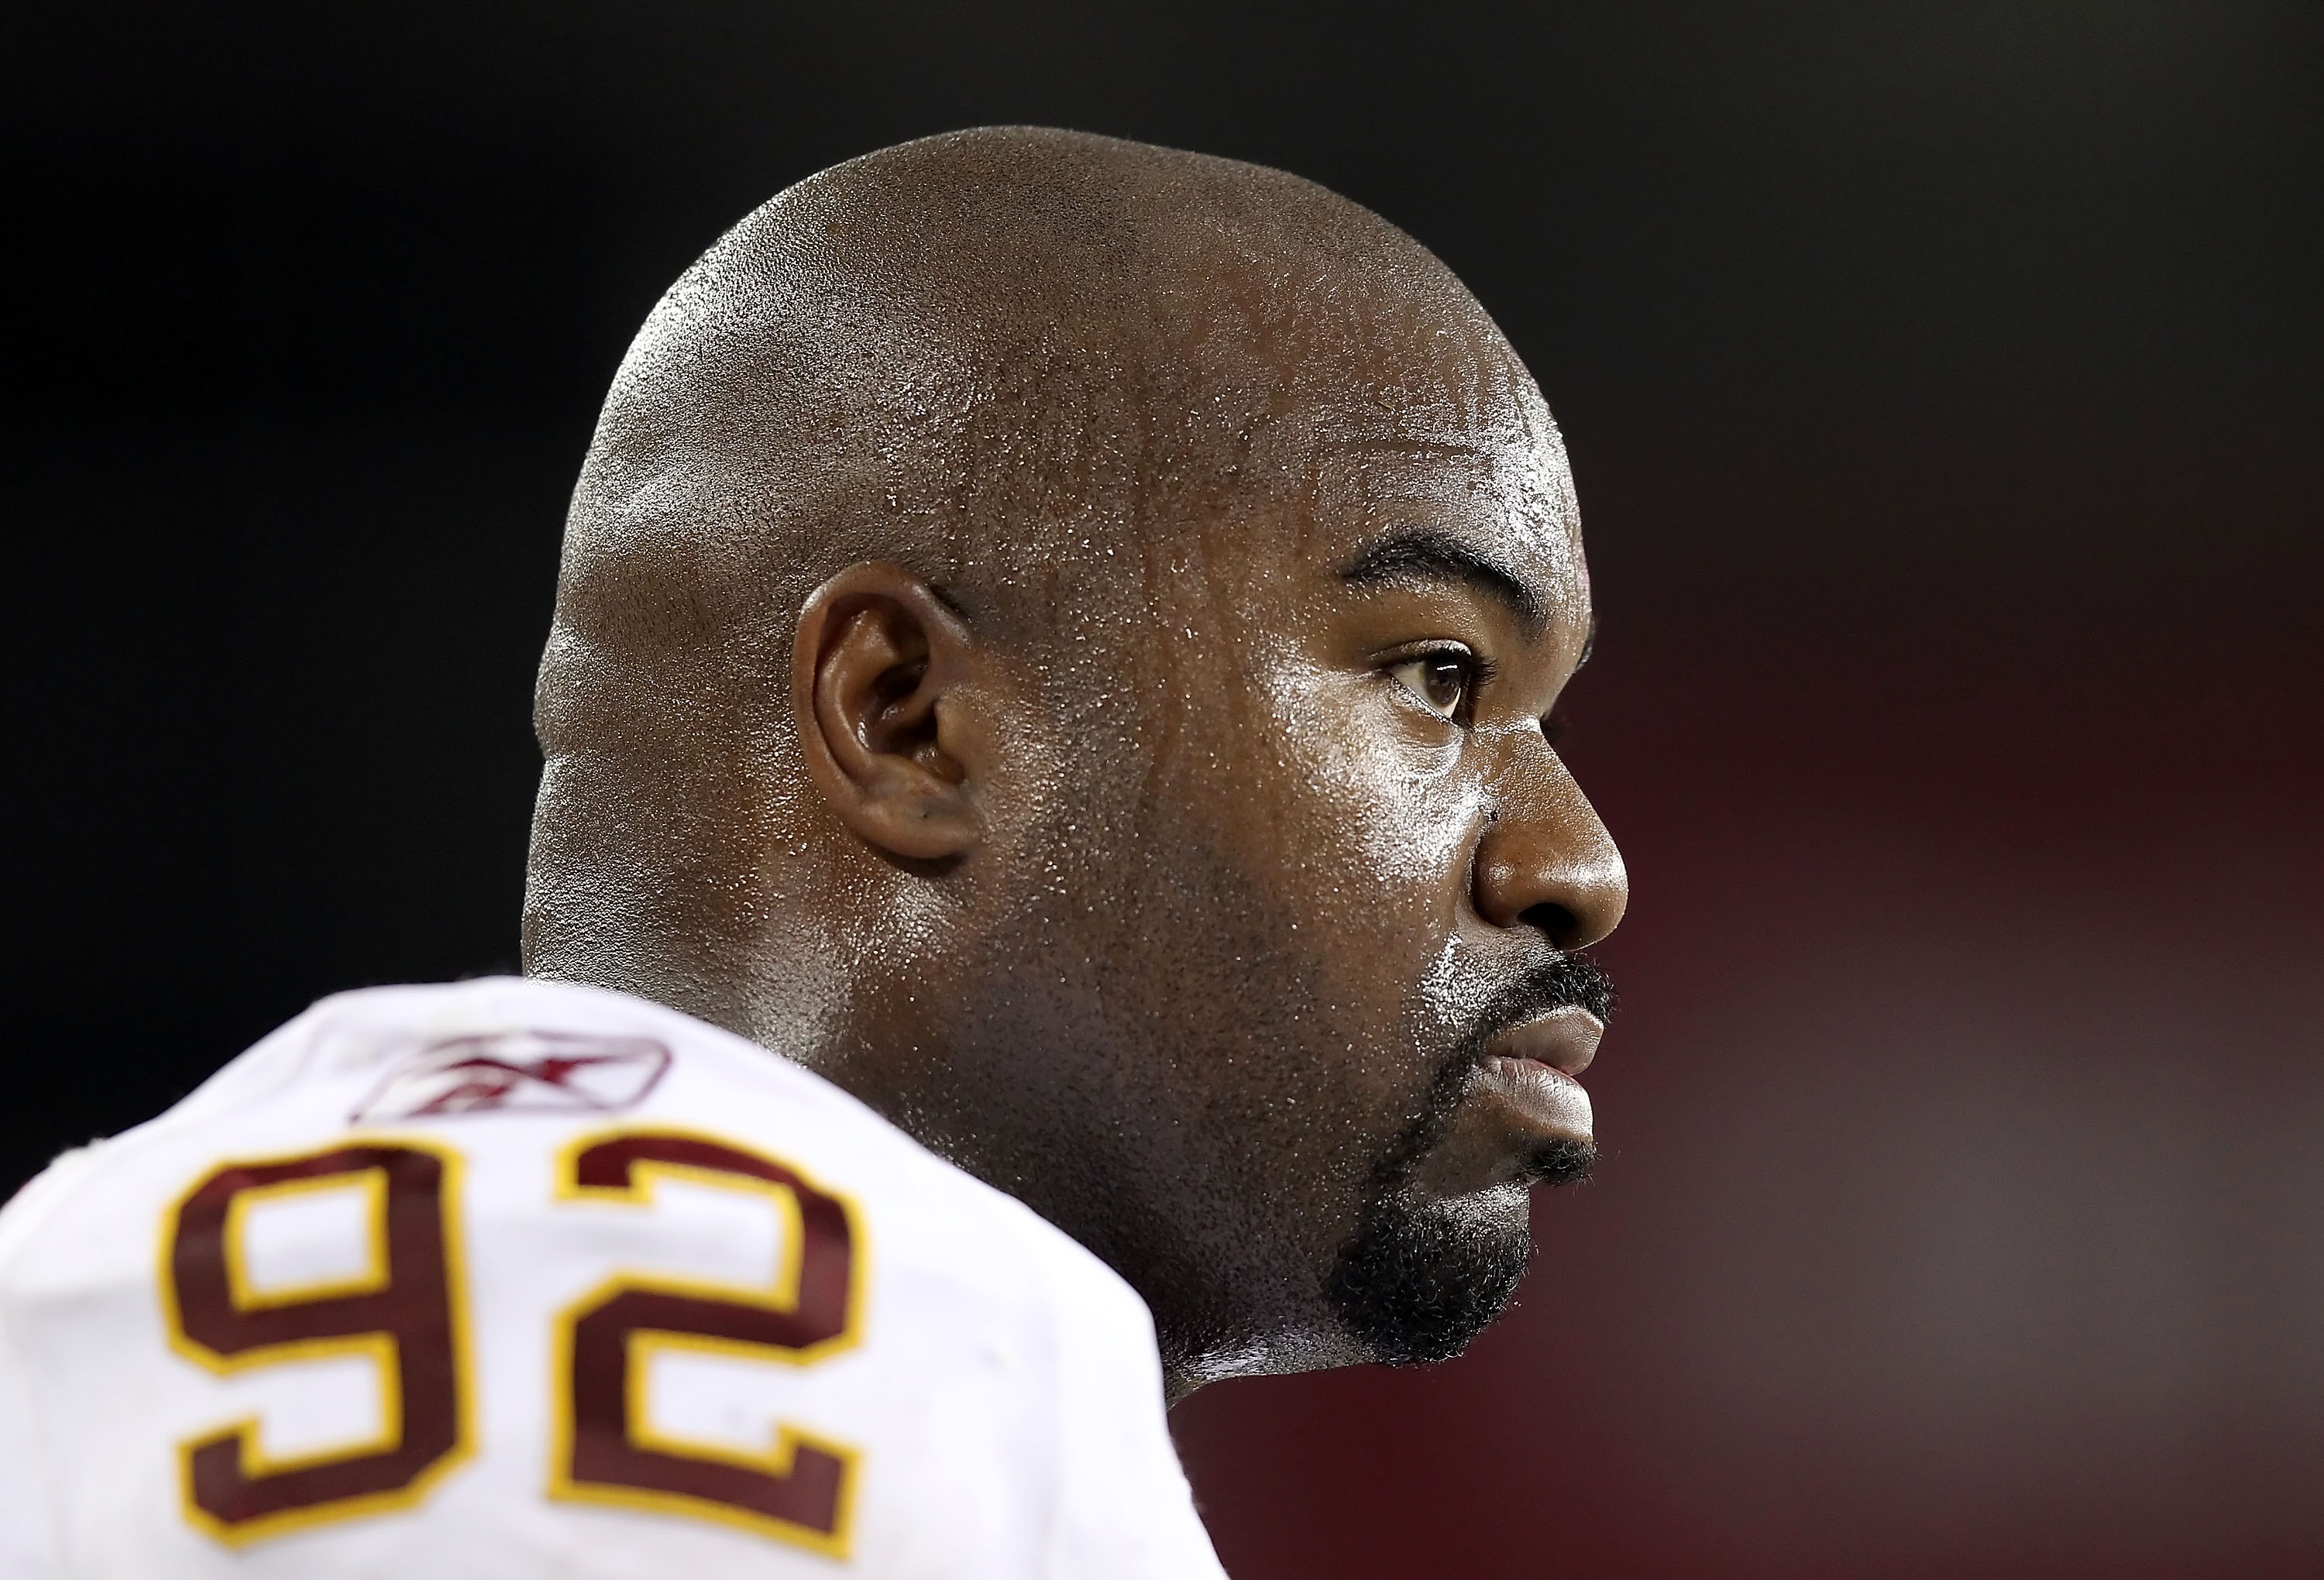 Albert Haynesworth-Mike Shanahan and the Worst Player-Coach Feuds in Sports 35aa45486